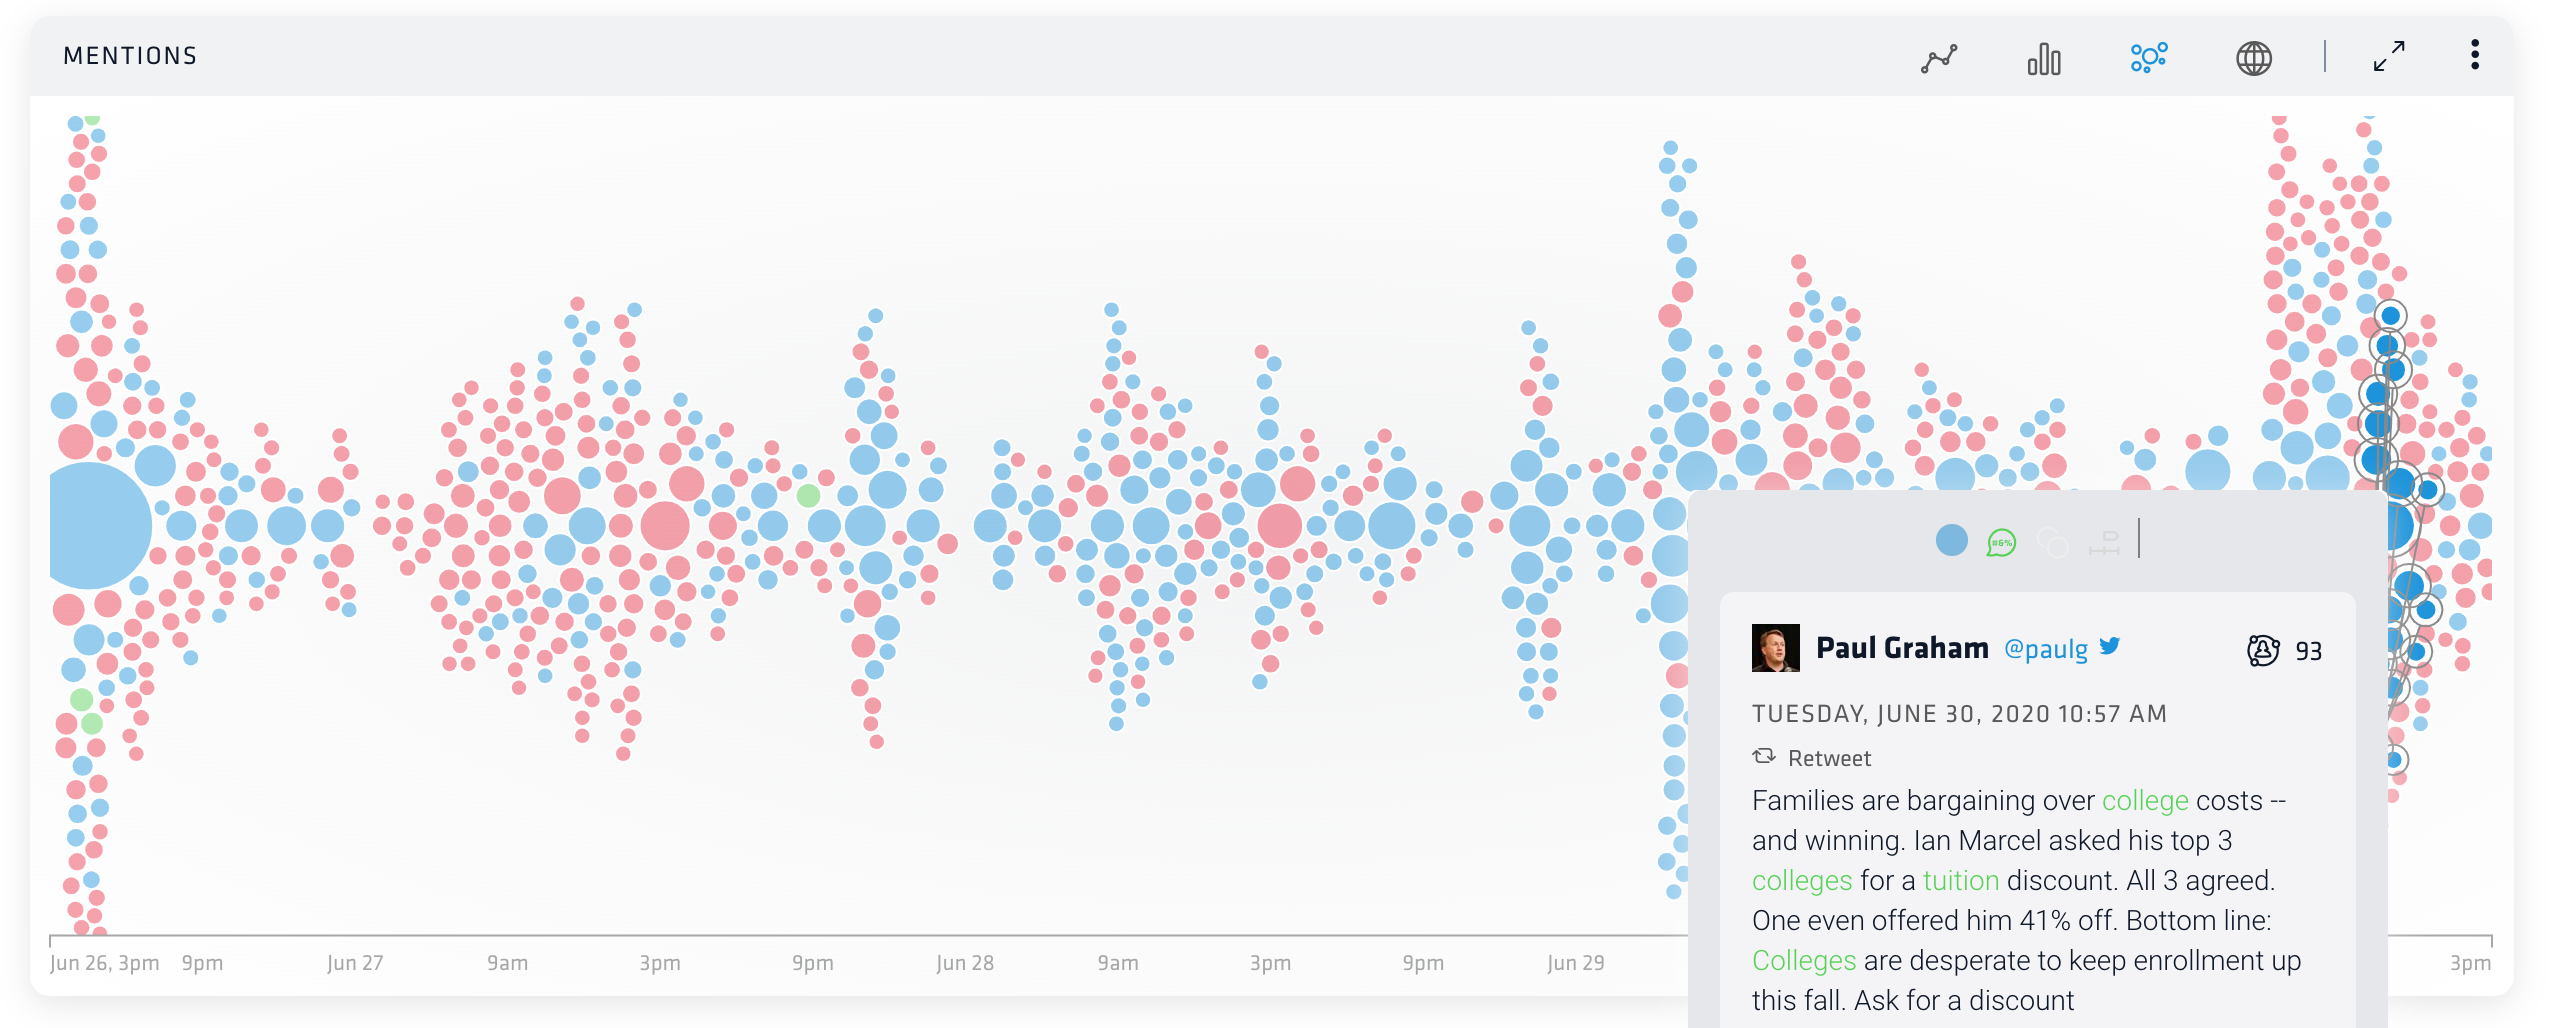 Nuvi's social listening for customer engagement and customer experience strategy with their patented bubble stream, shows that most the conversation found through social media monitoring around universities is negative. One tweet is selected to show the general sentiment. The retweet is by Paul Graham that reads: Families are bargaining over college costs— and winning. Ian Marcel asked his top 3 colleges for a tuition discount. All 3 agreed. One even offered him 41% off. Bottom line: Colleges are desperate to keep enrollment up this fall. Ask for a discount.